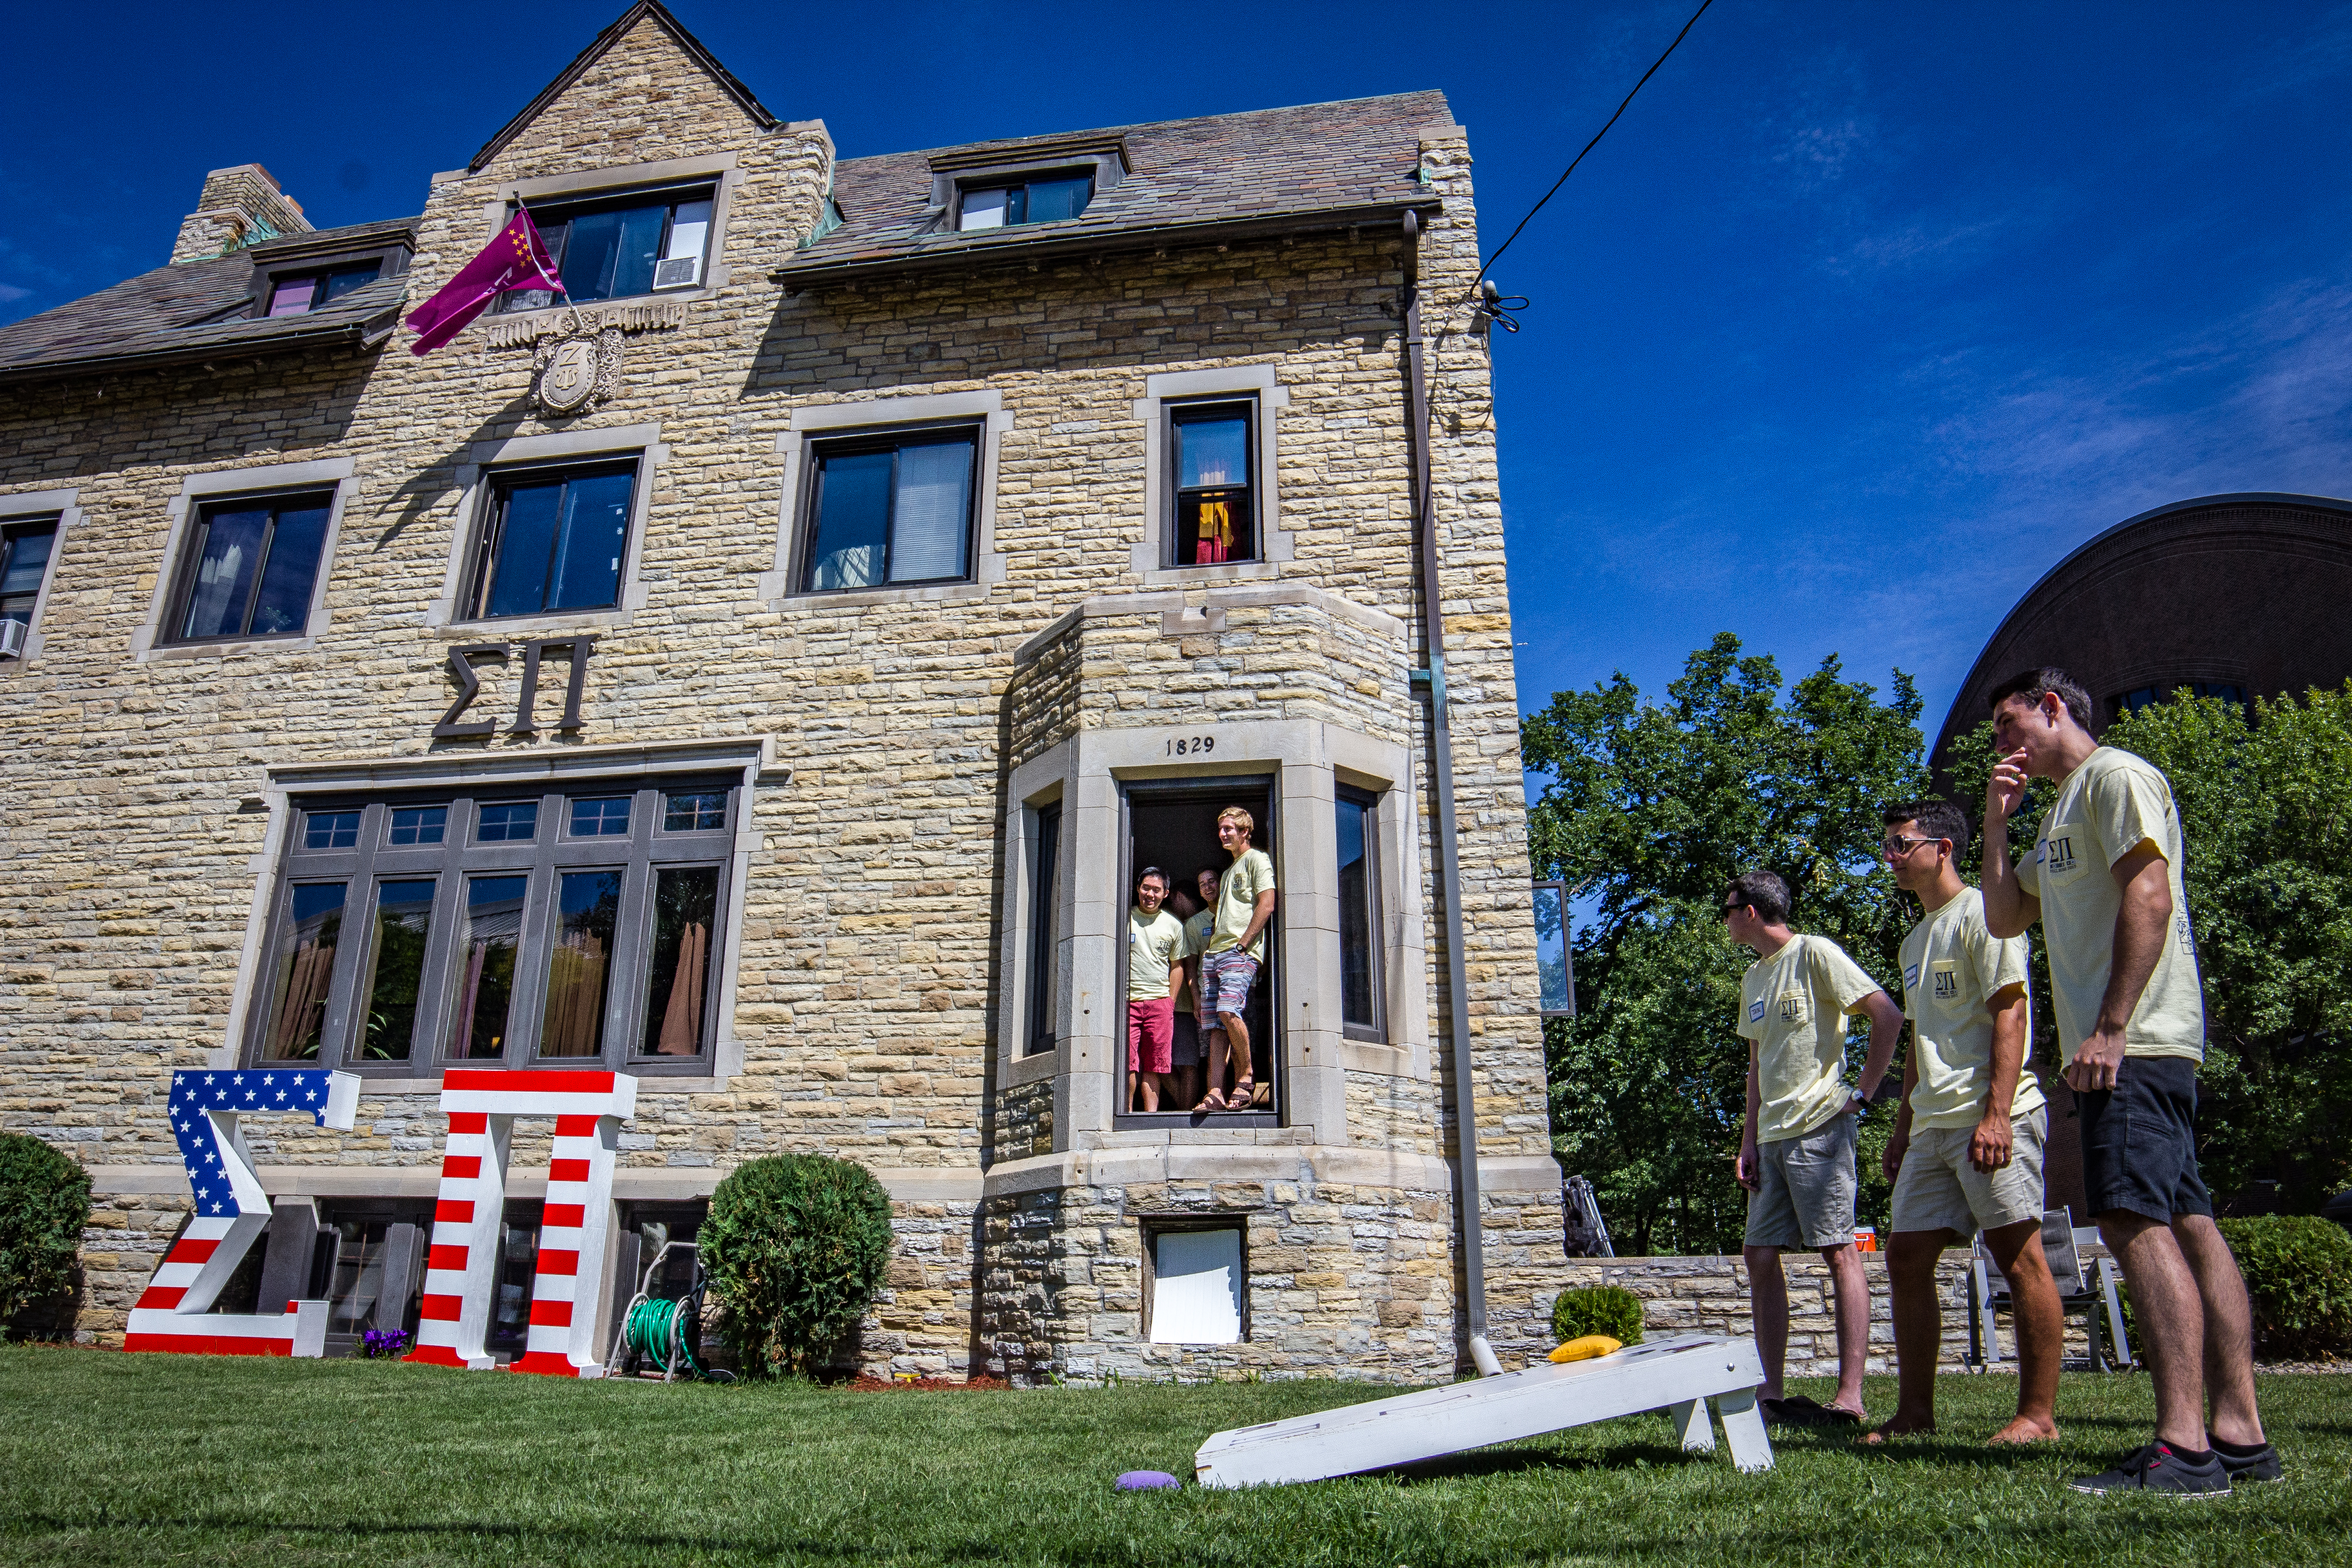 University of Minnesota Fraternity